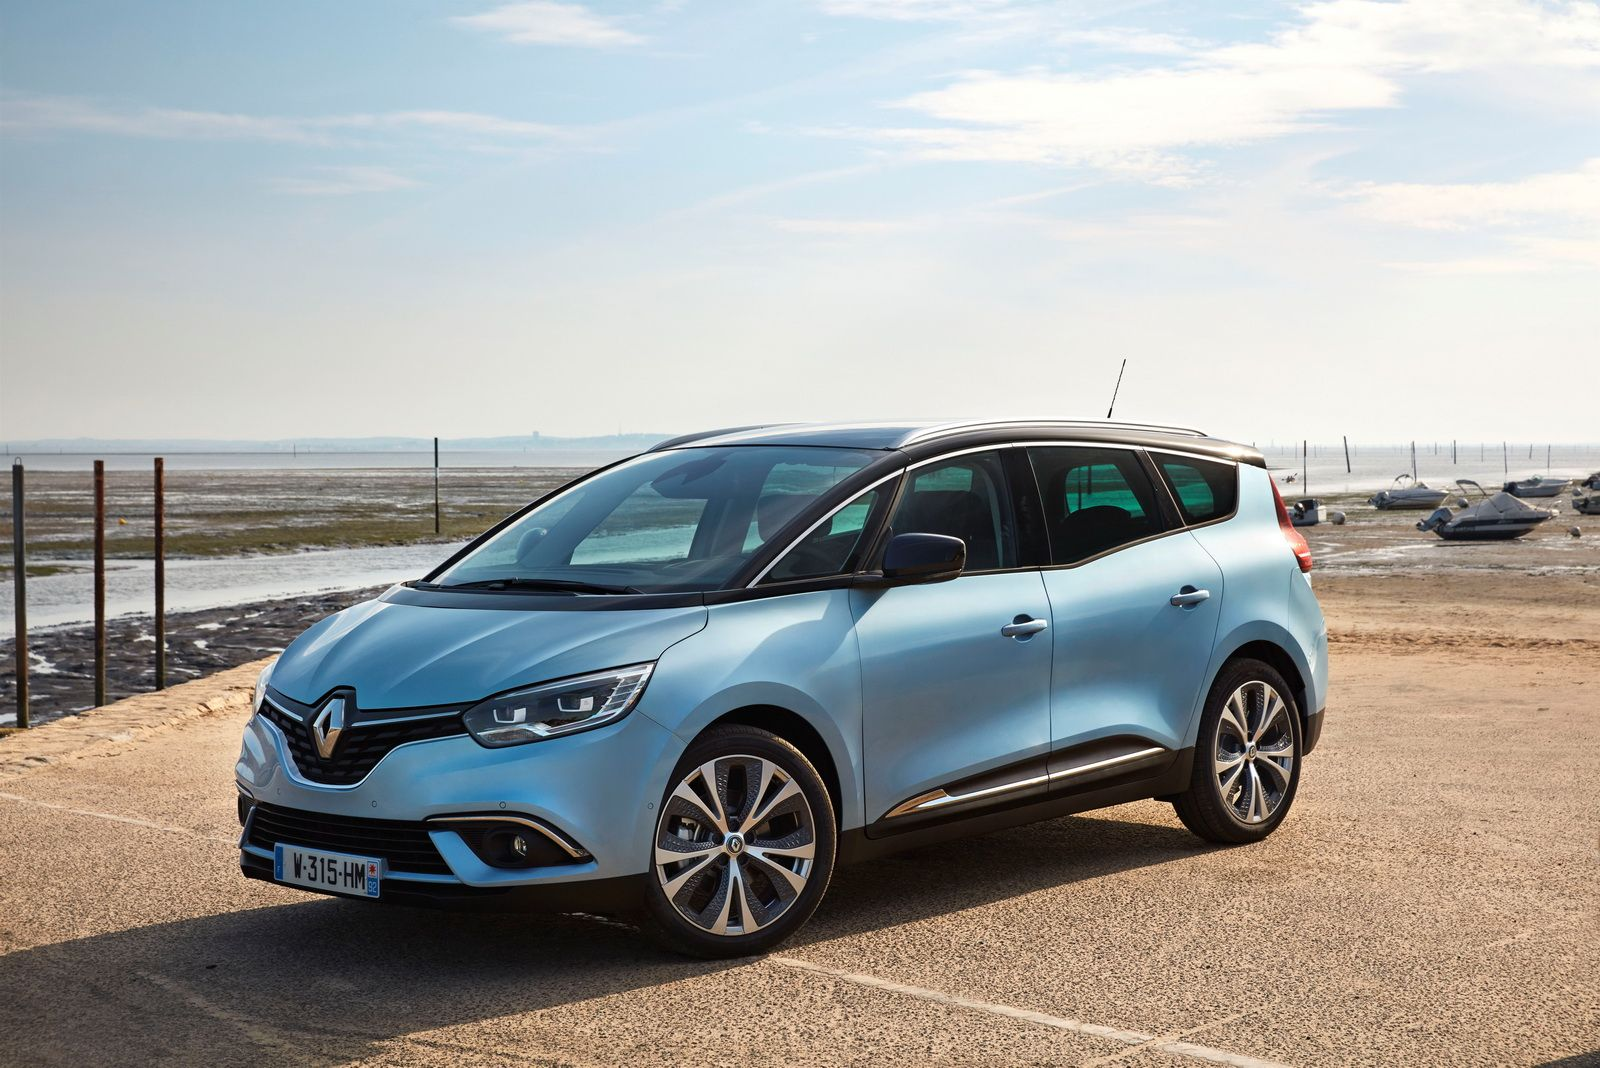 Renault Drops Massive Gallery With New Scenic Grand Scenic 138 Images Carscoops Scenic Renault Renault Old Classic Cars